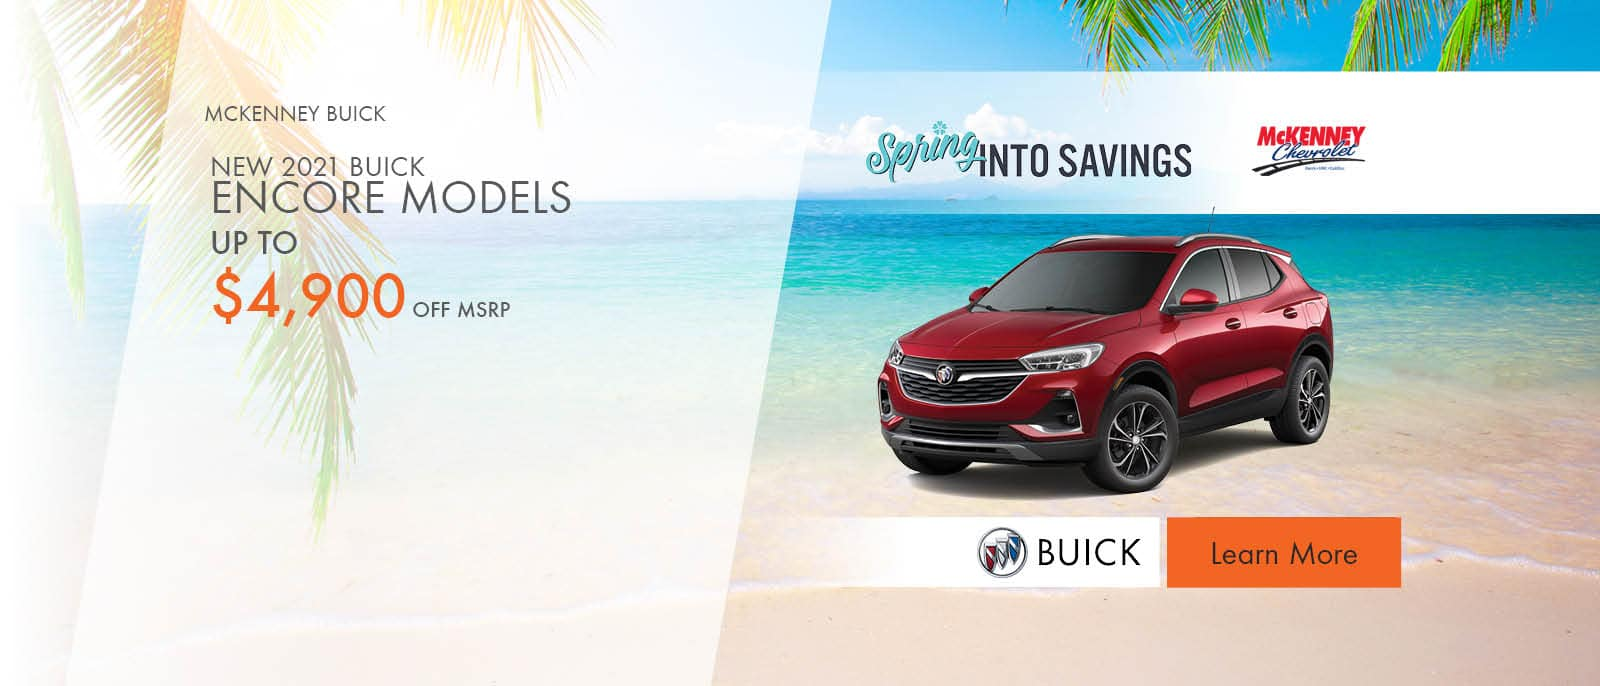 2021 Buick Encore Models up to $4,900 off MSRP